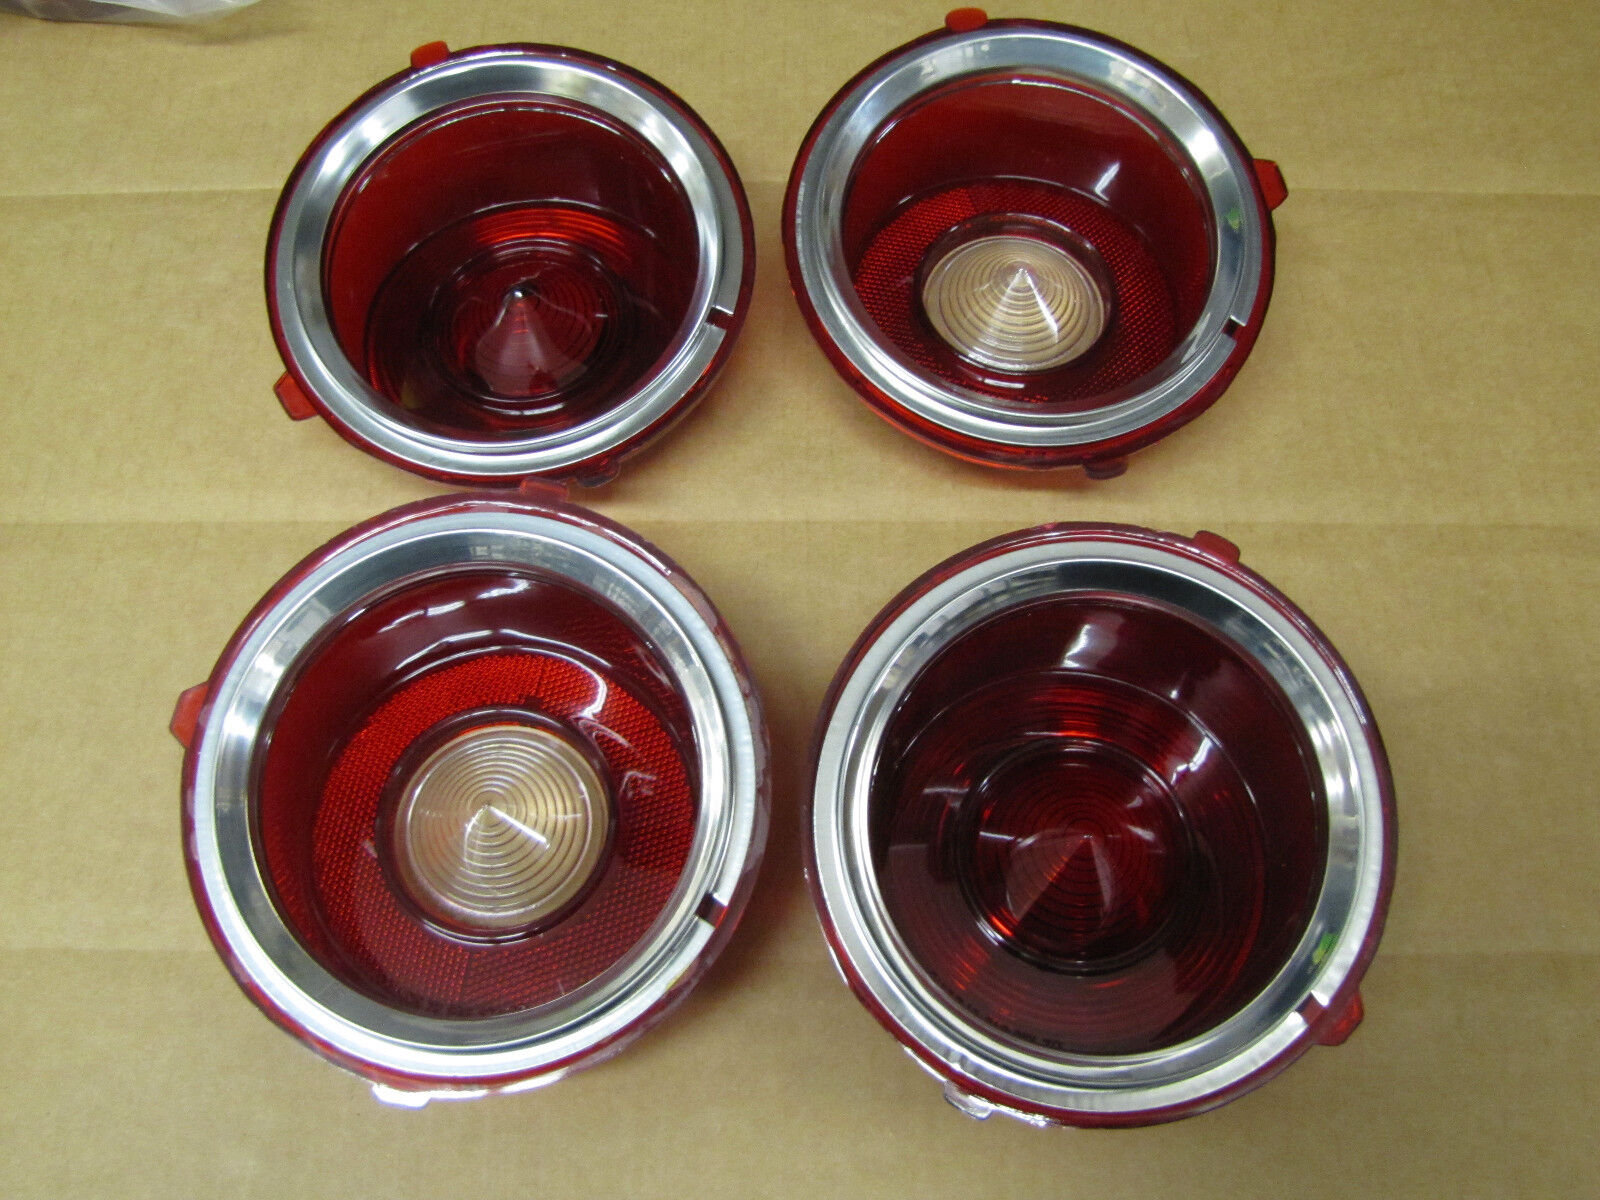 70-71 EARLY CAMARO TAILLIGHT AND BACK UP REVERSE LIGHT LENS SET, STANDARD MODELS